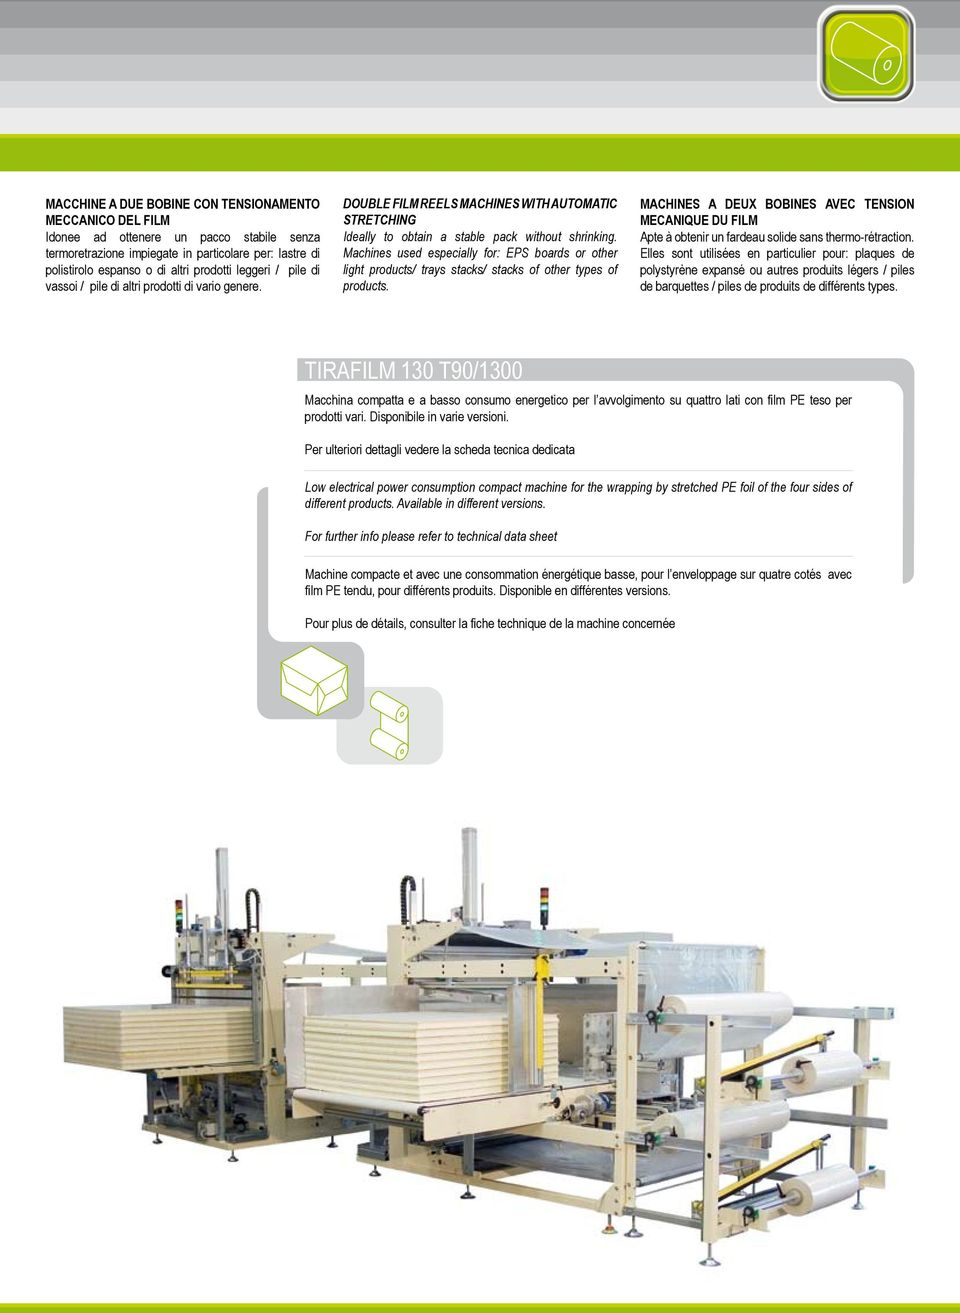 Machines used especially for: EPS boards or other light products/ trays stacks/ stacks of other types of products.